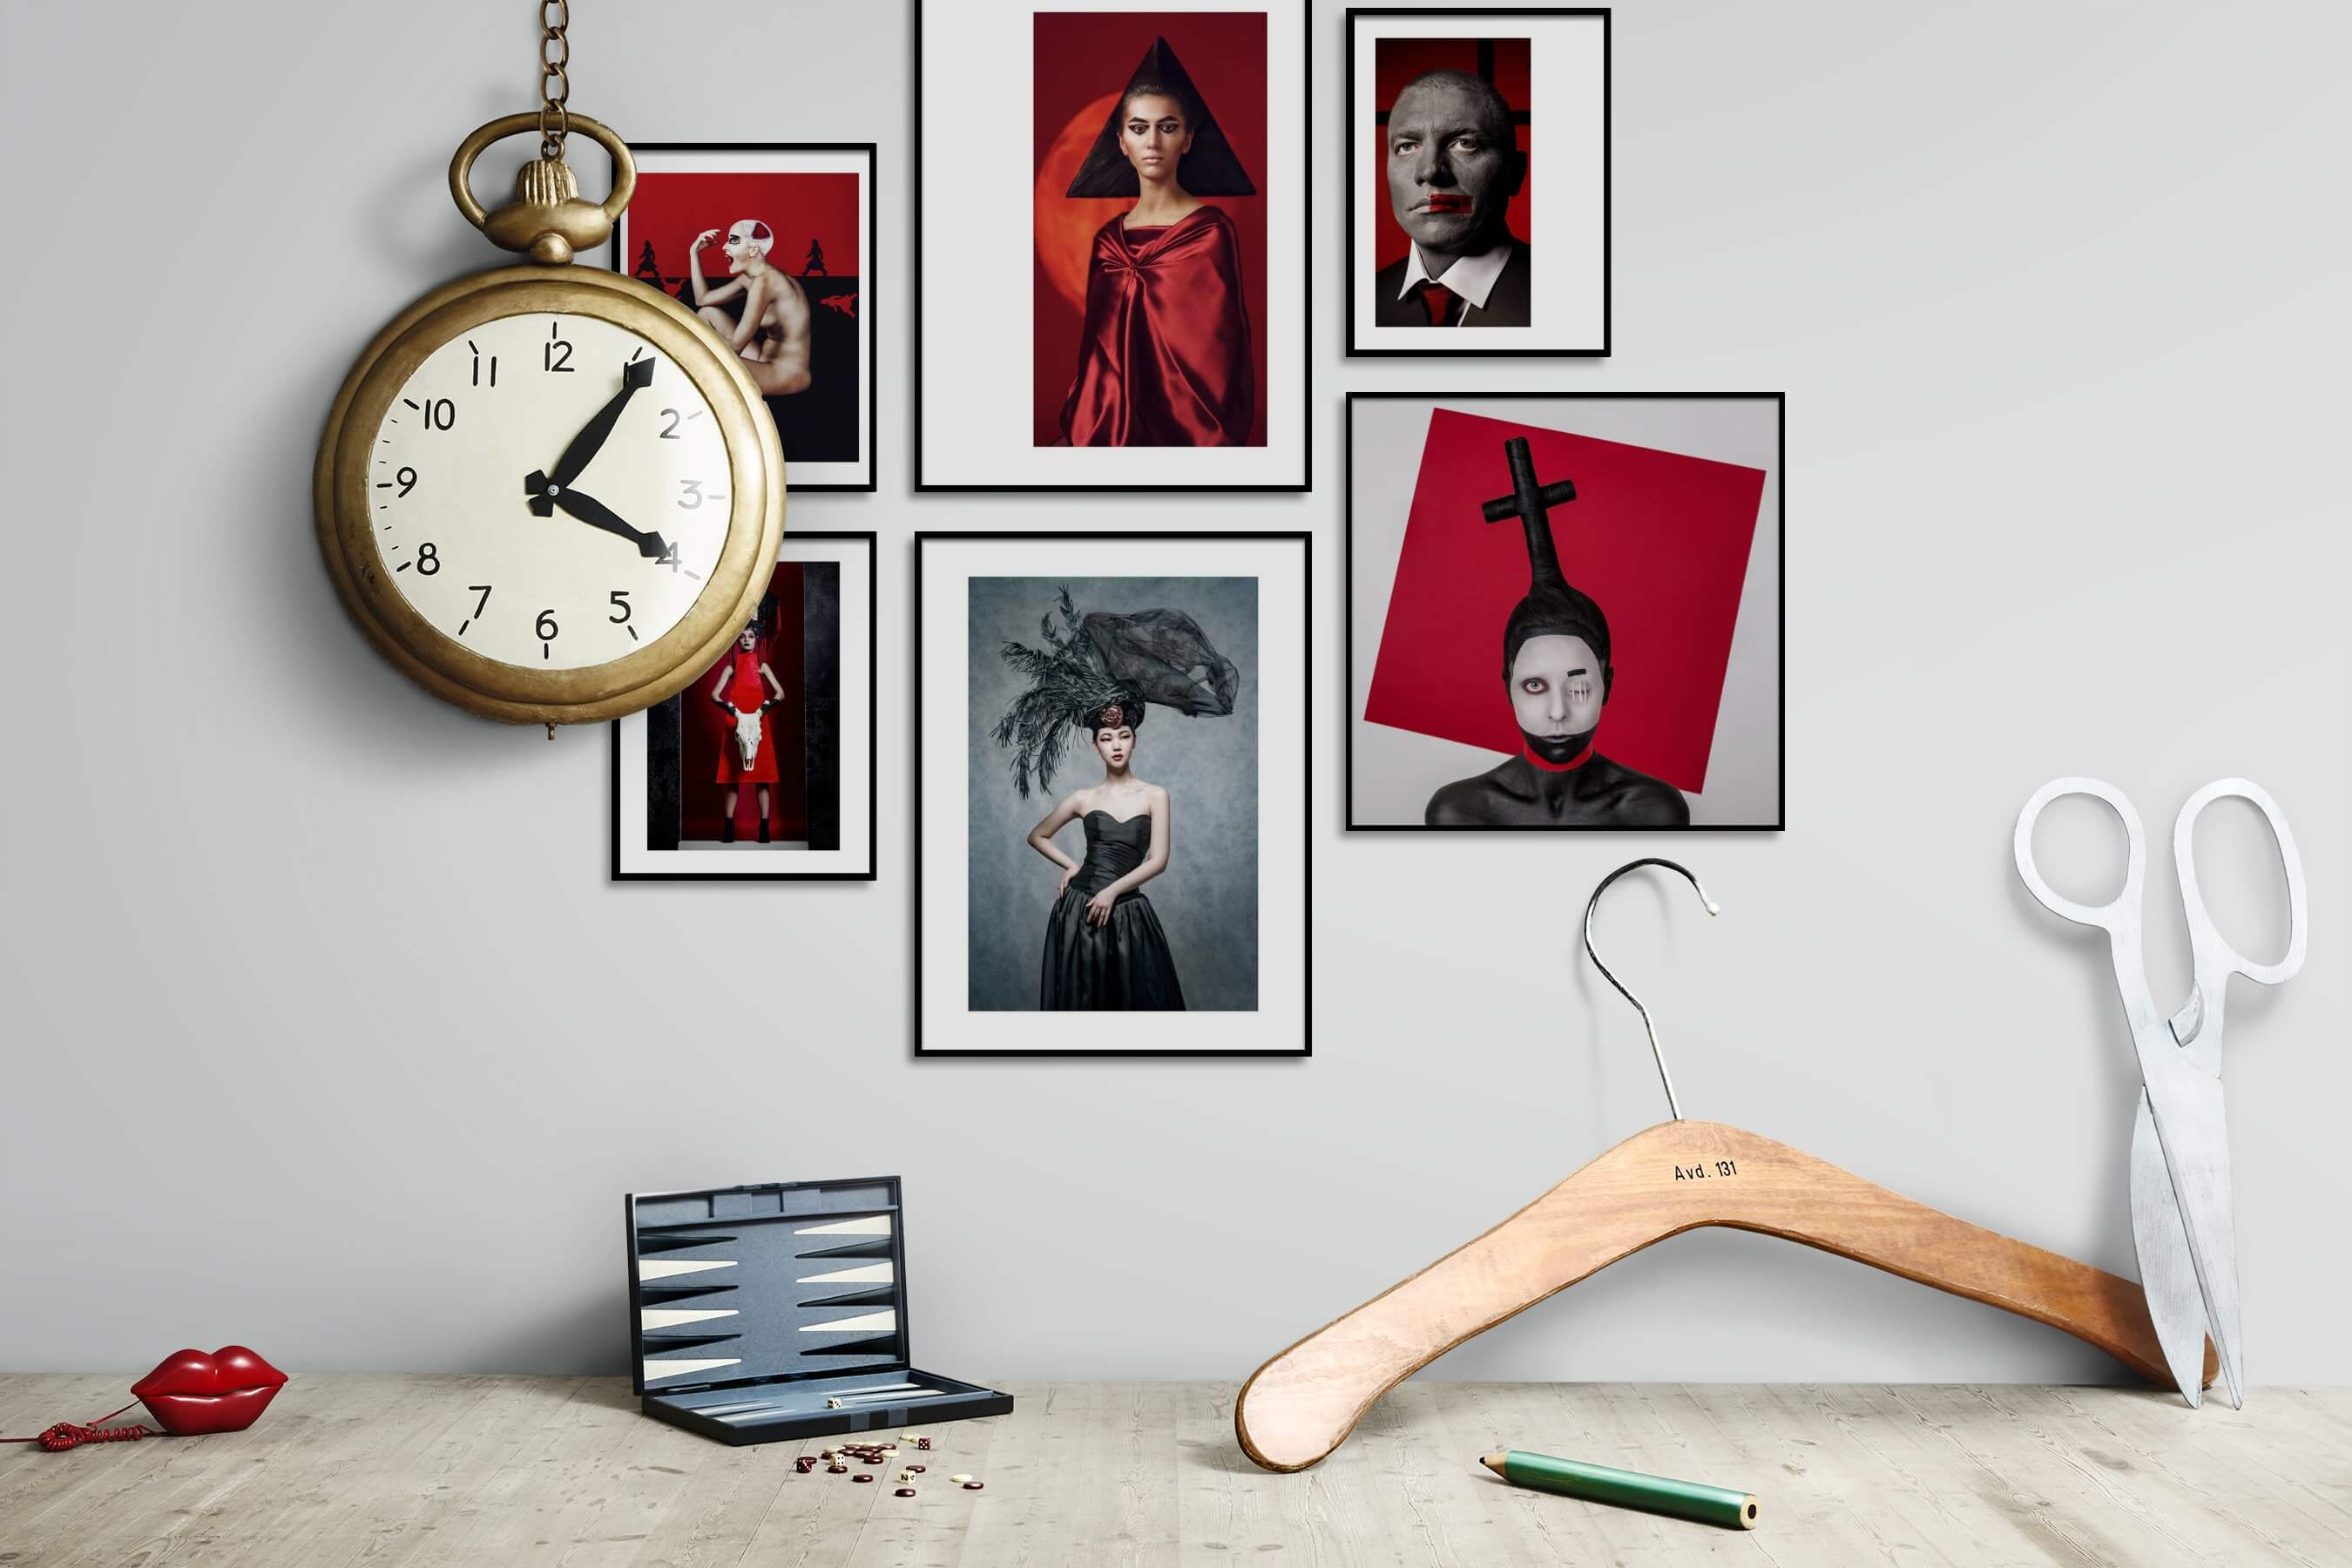 Gallery wall idea with six framed pictures arranged on a wall depicting Artsy, Bold, and Fashion & Beauty